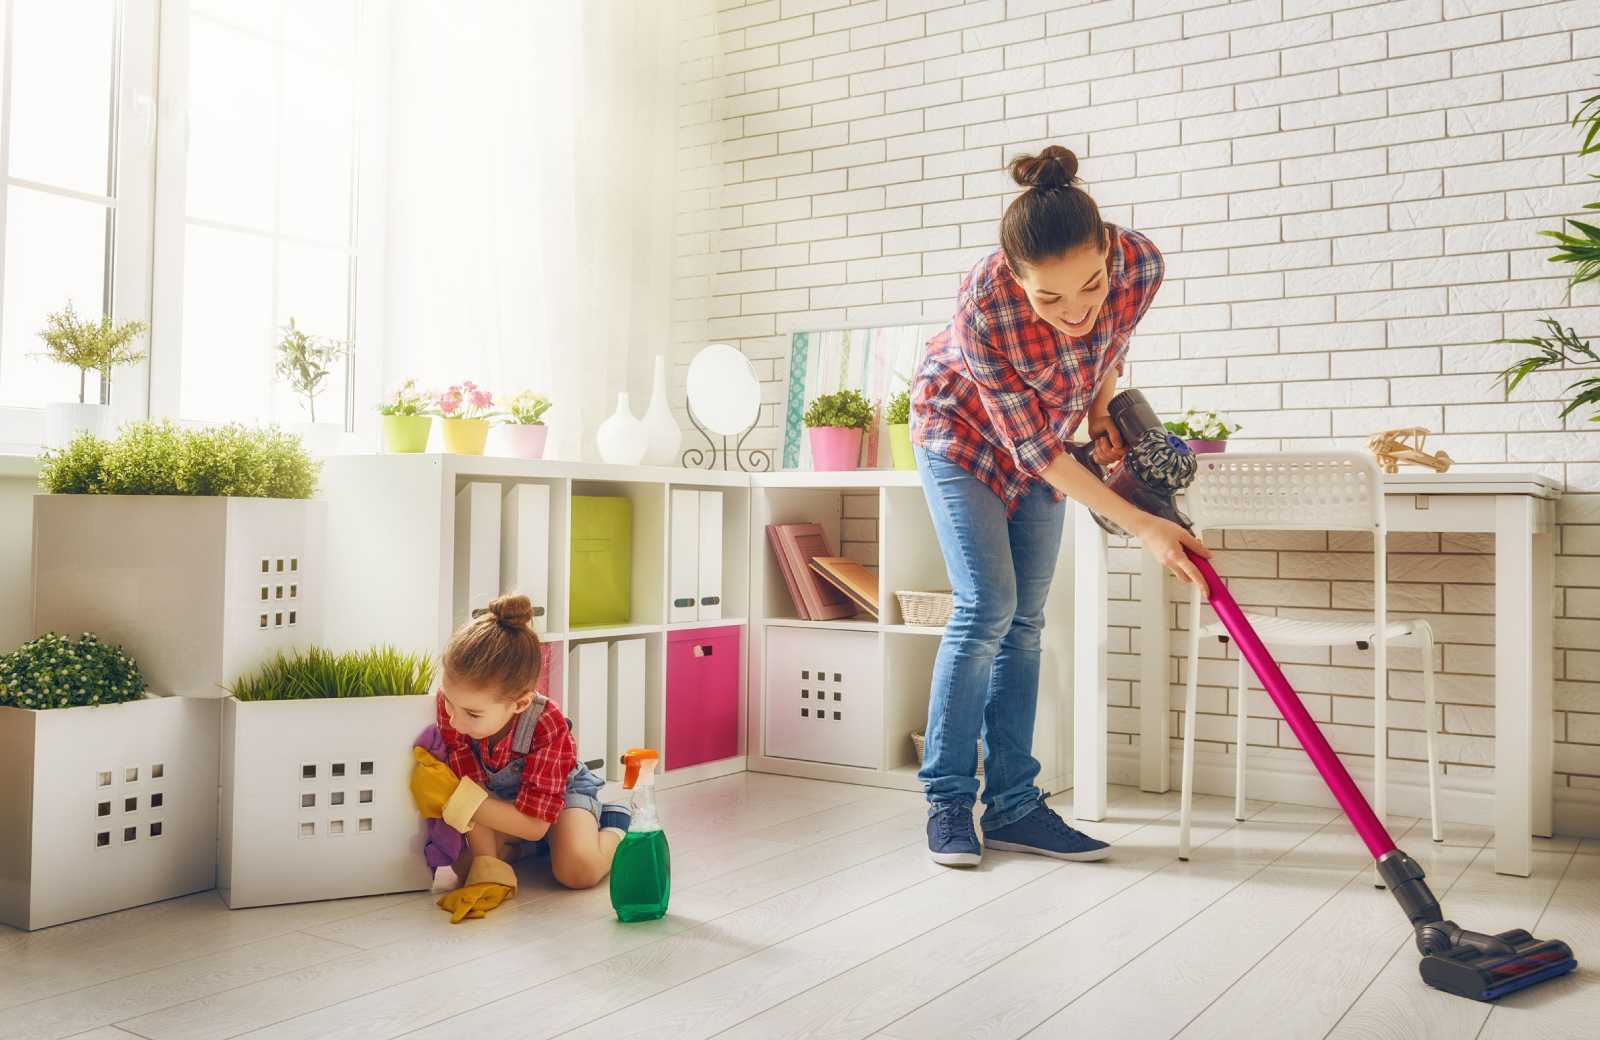 Woman Cleaning The House - The Village Residences Apts